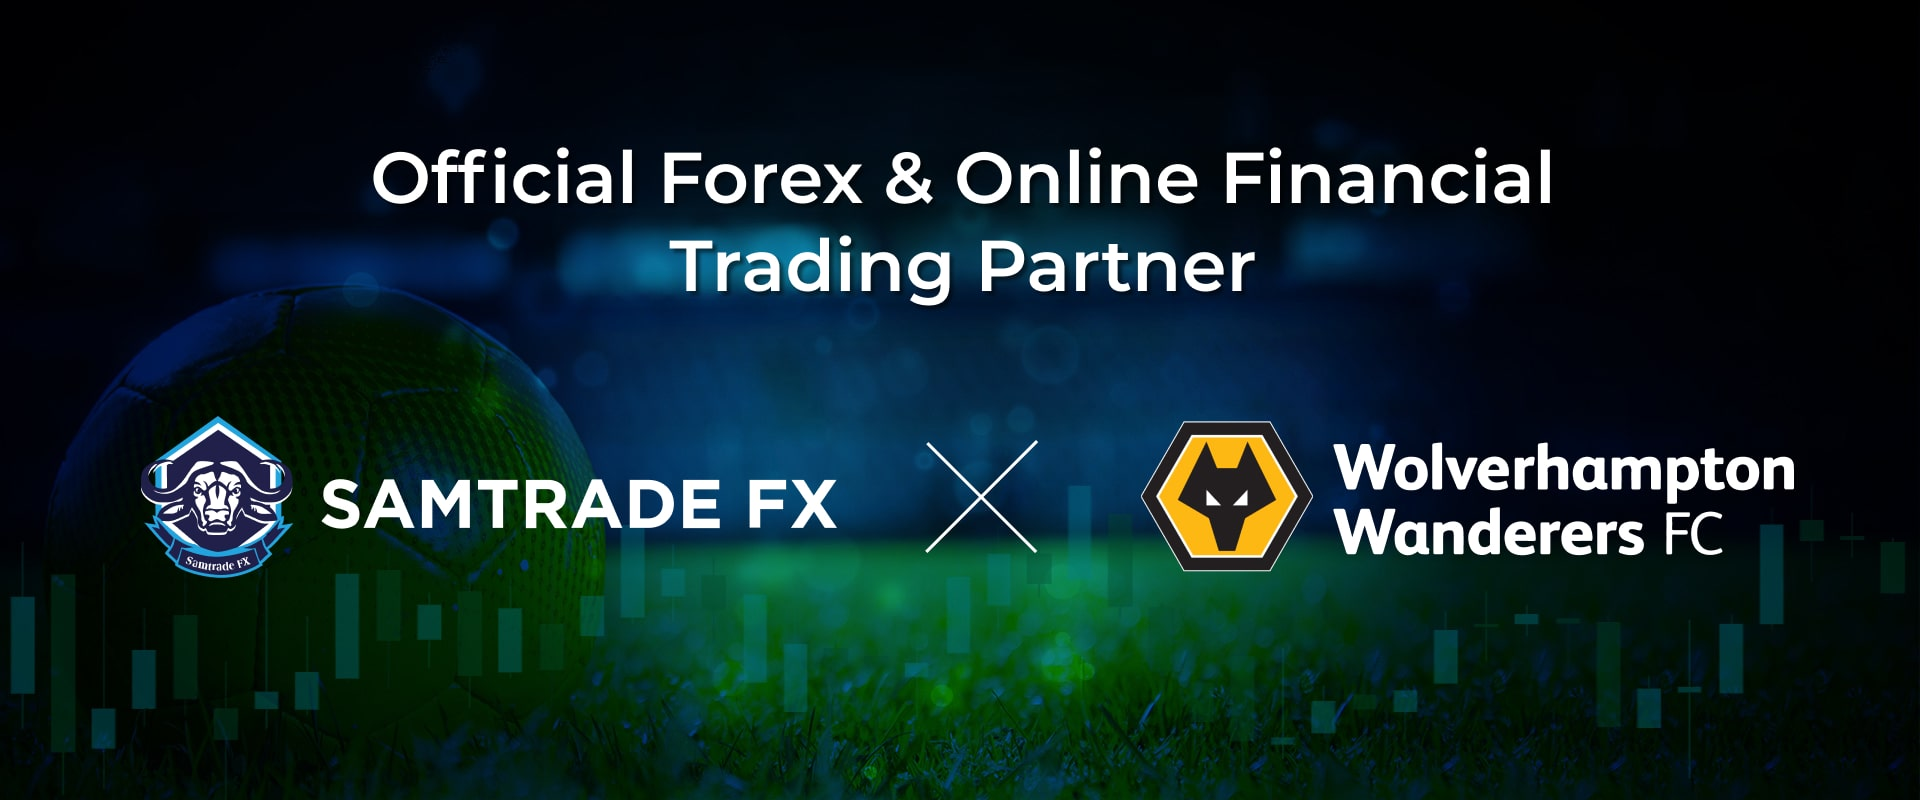 SAMTRADE FX SIGNS SPONSORSHIP DEAL WITH EPL TEAM WOLVERHAMPTON WANDERERS FC